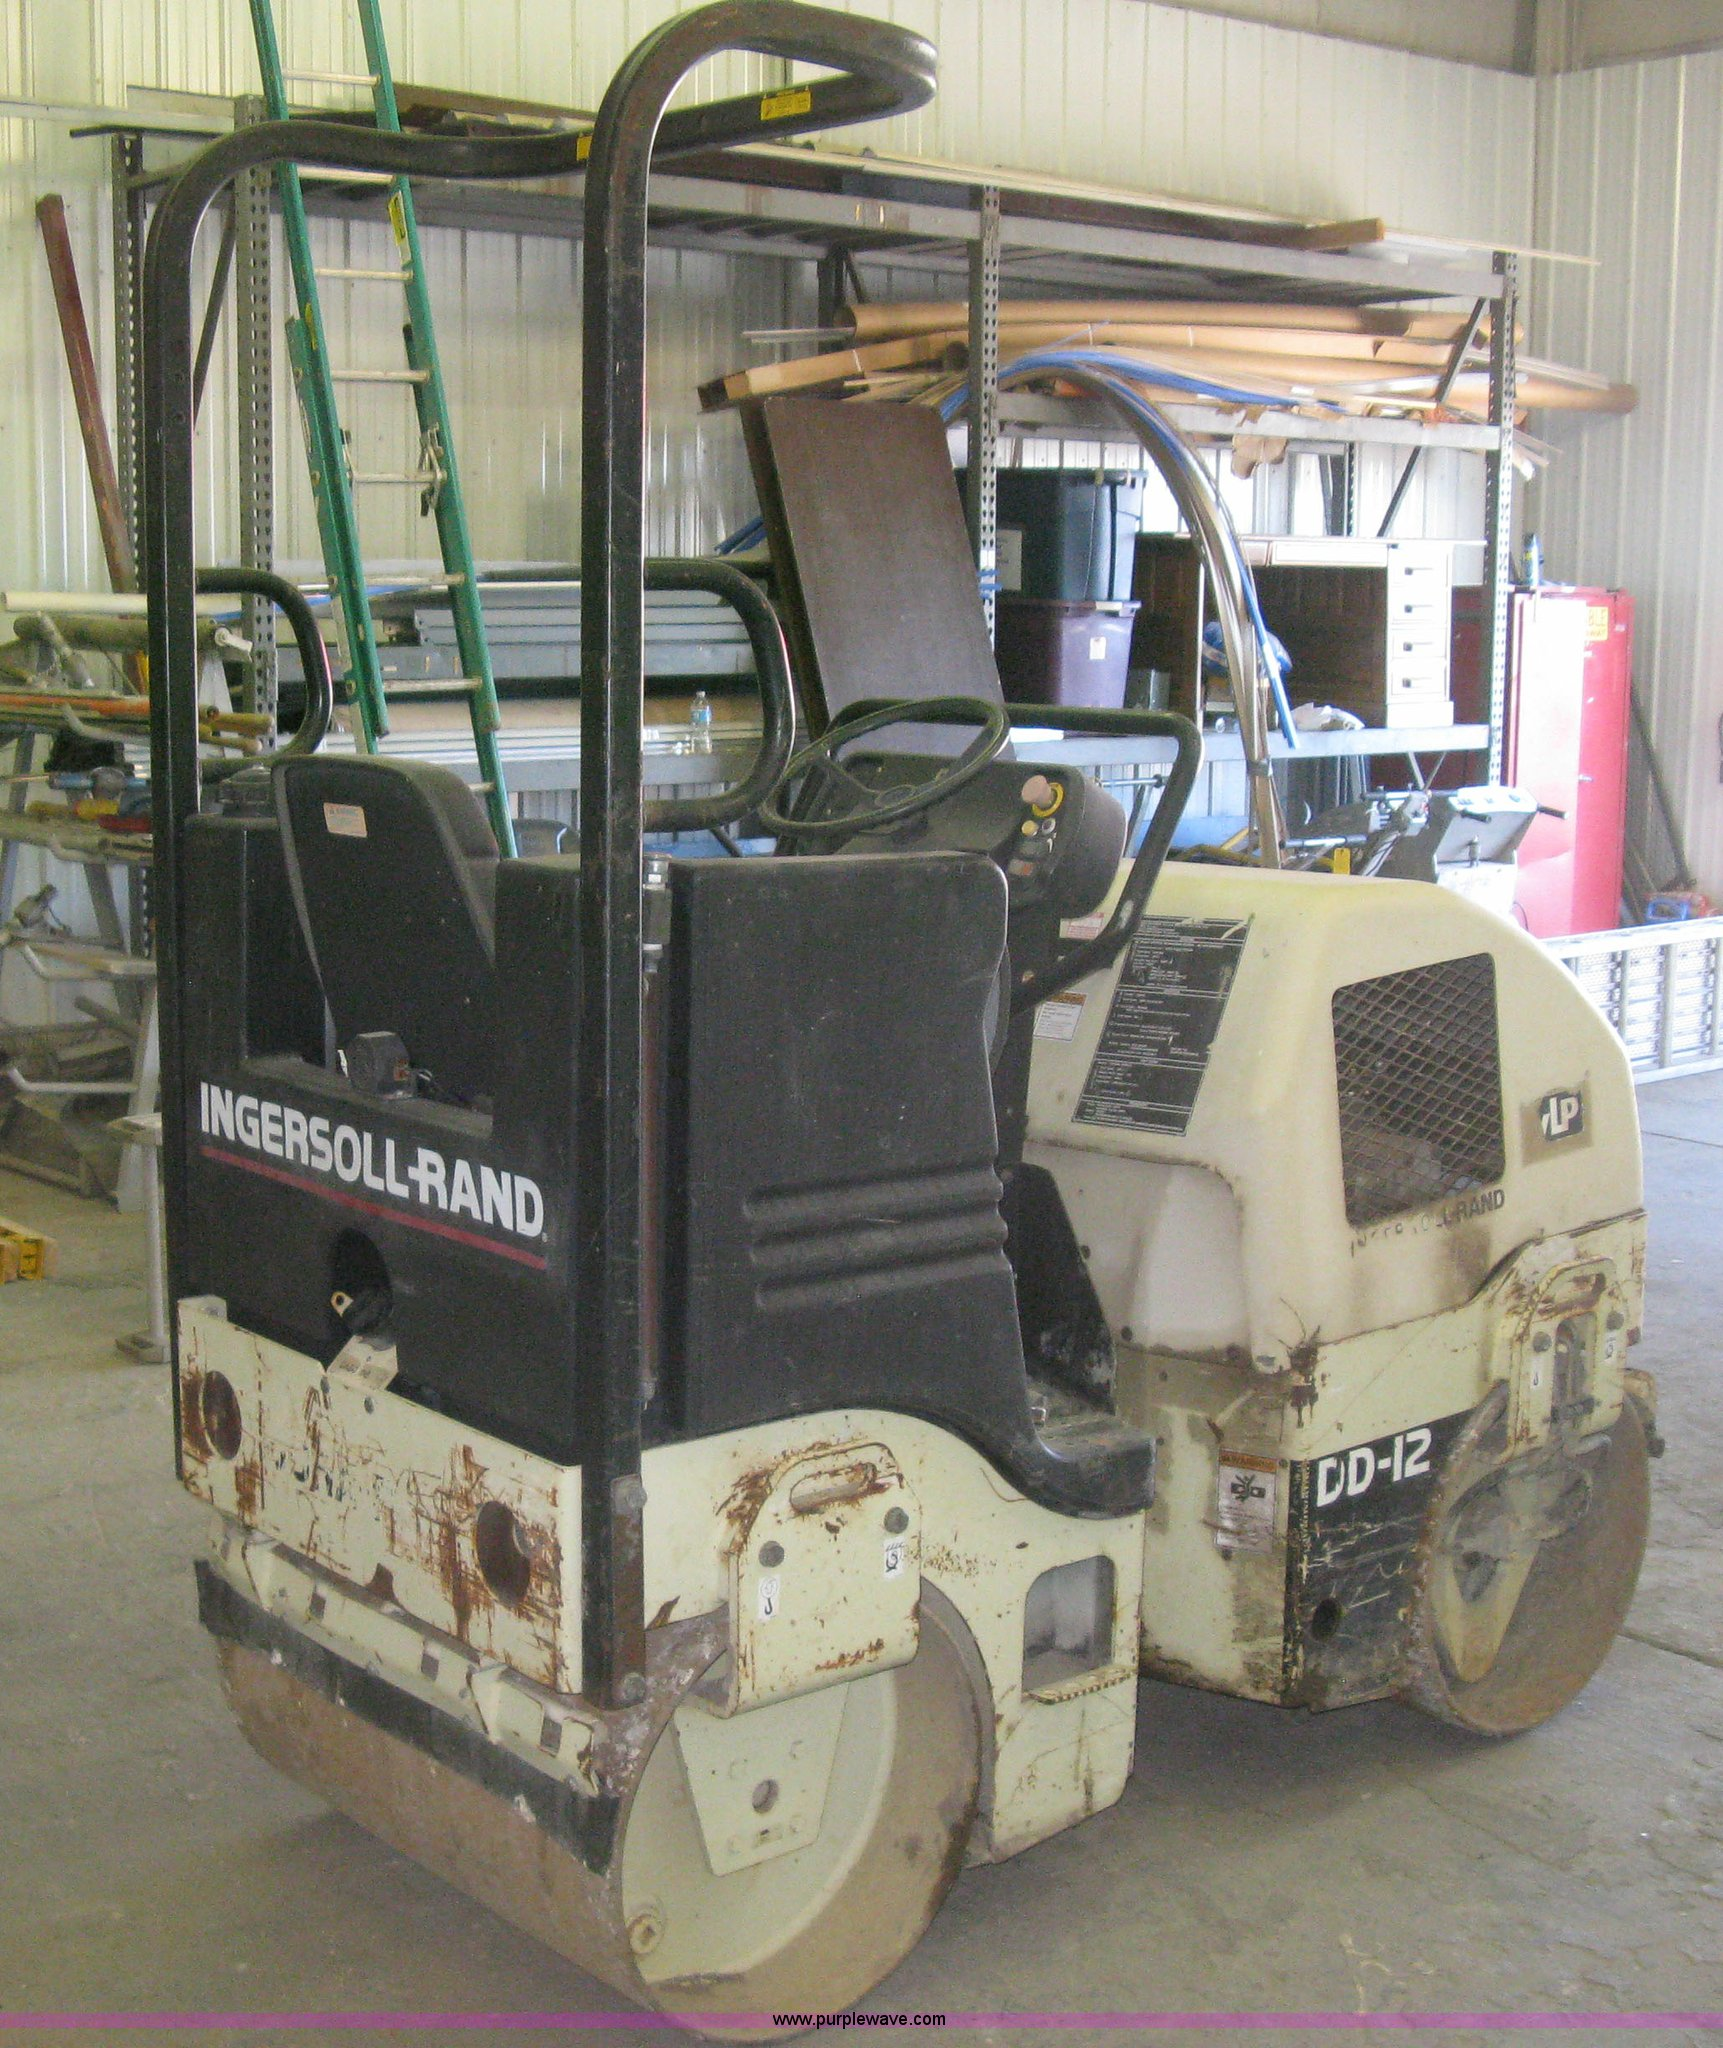 Full size in new window; H9317 image for item H9317 Ingersoll Rand DD-12  articulated vibratory asphalt compactor